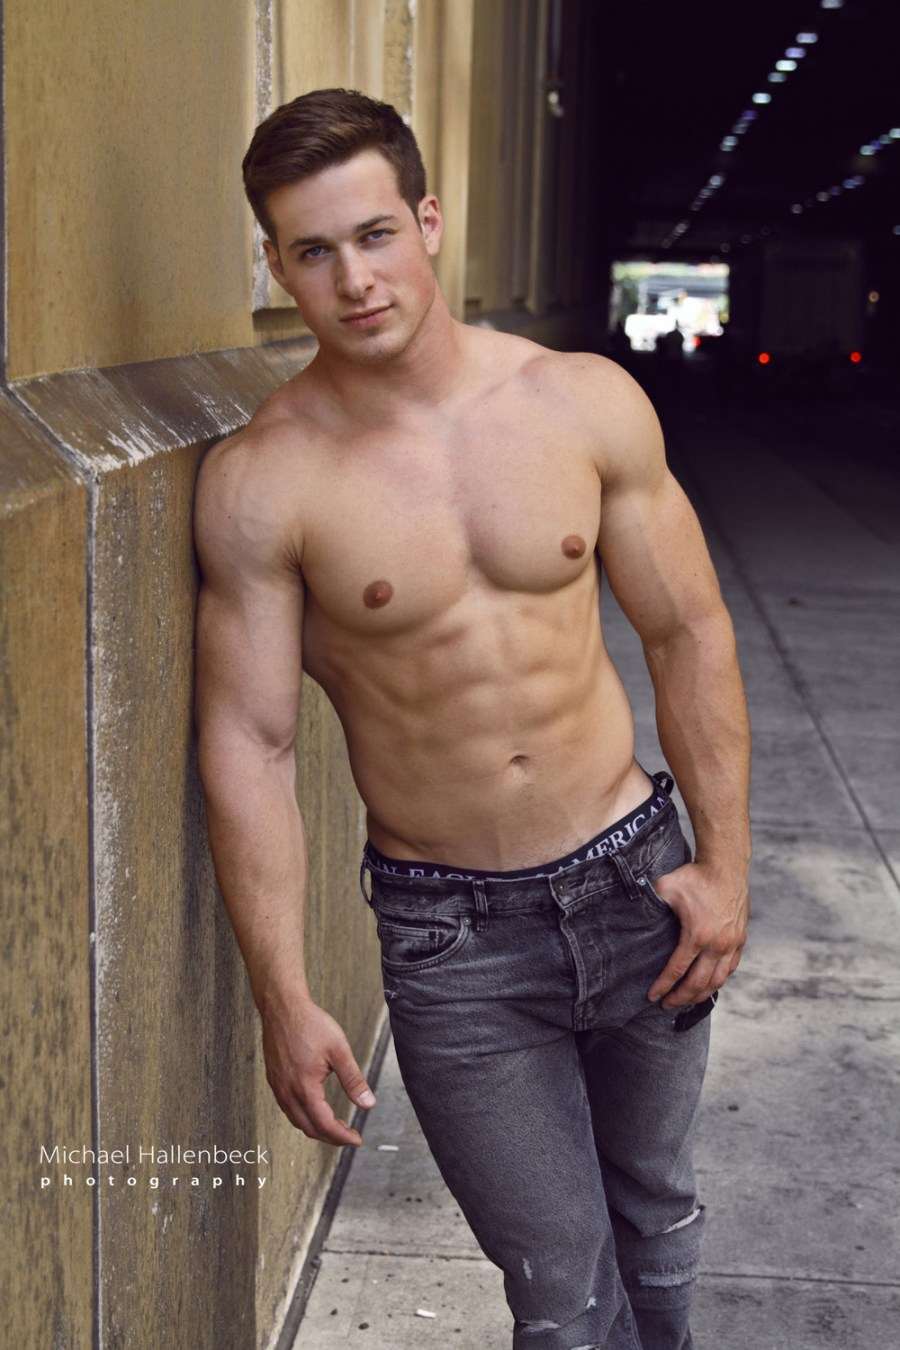 """Recently named Sexiest Man Alive by People Magazine/Tinder for being the """"most swiped right man,"""" it doesn't take long to see why the public loves him. This New Hampshire native is one hot hunk of muscle! He even appeared on NBC's """"Today"""" show for winning the Hottest Man. Sandell has also been a long time favorite on our PnV twitter and instagram followers. The 22 year old calls Rahway, NJ home these days. He is 5'10"""", 215 pounds with blue eyes and brown hair. Sandell is represented by NY's Silver Modeling/Chelsea Talent and with Evolution Talent in London. He's also shot for Iovate's Six Star supplement line in Toronto."""